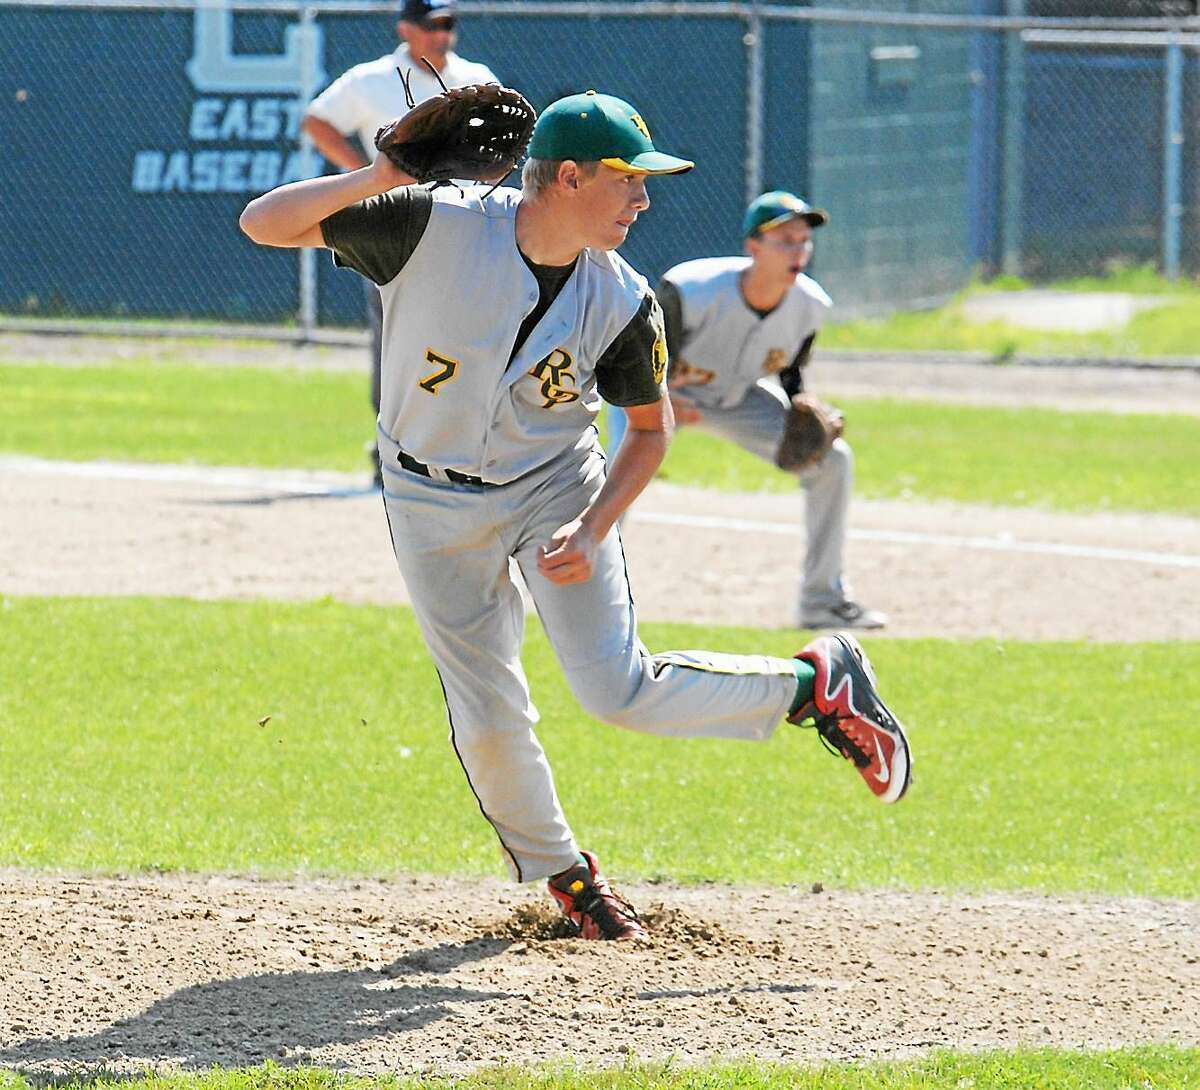 Jimmy Zanor ó The Middletown Press RCP's Matt Wyslick tossed a complete game to lift Post 105 past Riverside (R.I.) on Friday at Cranston Stadium.